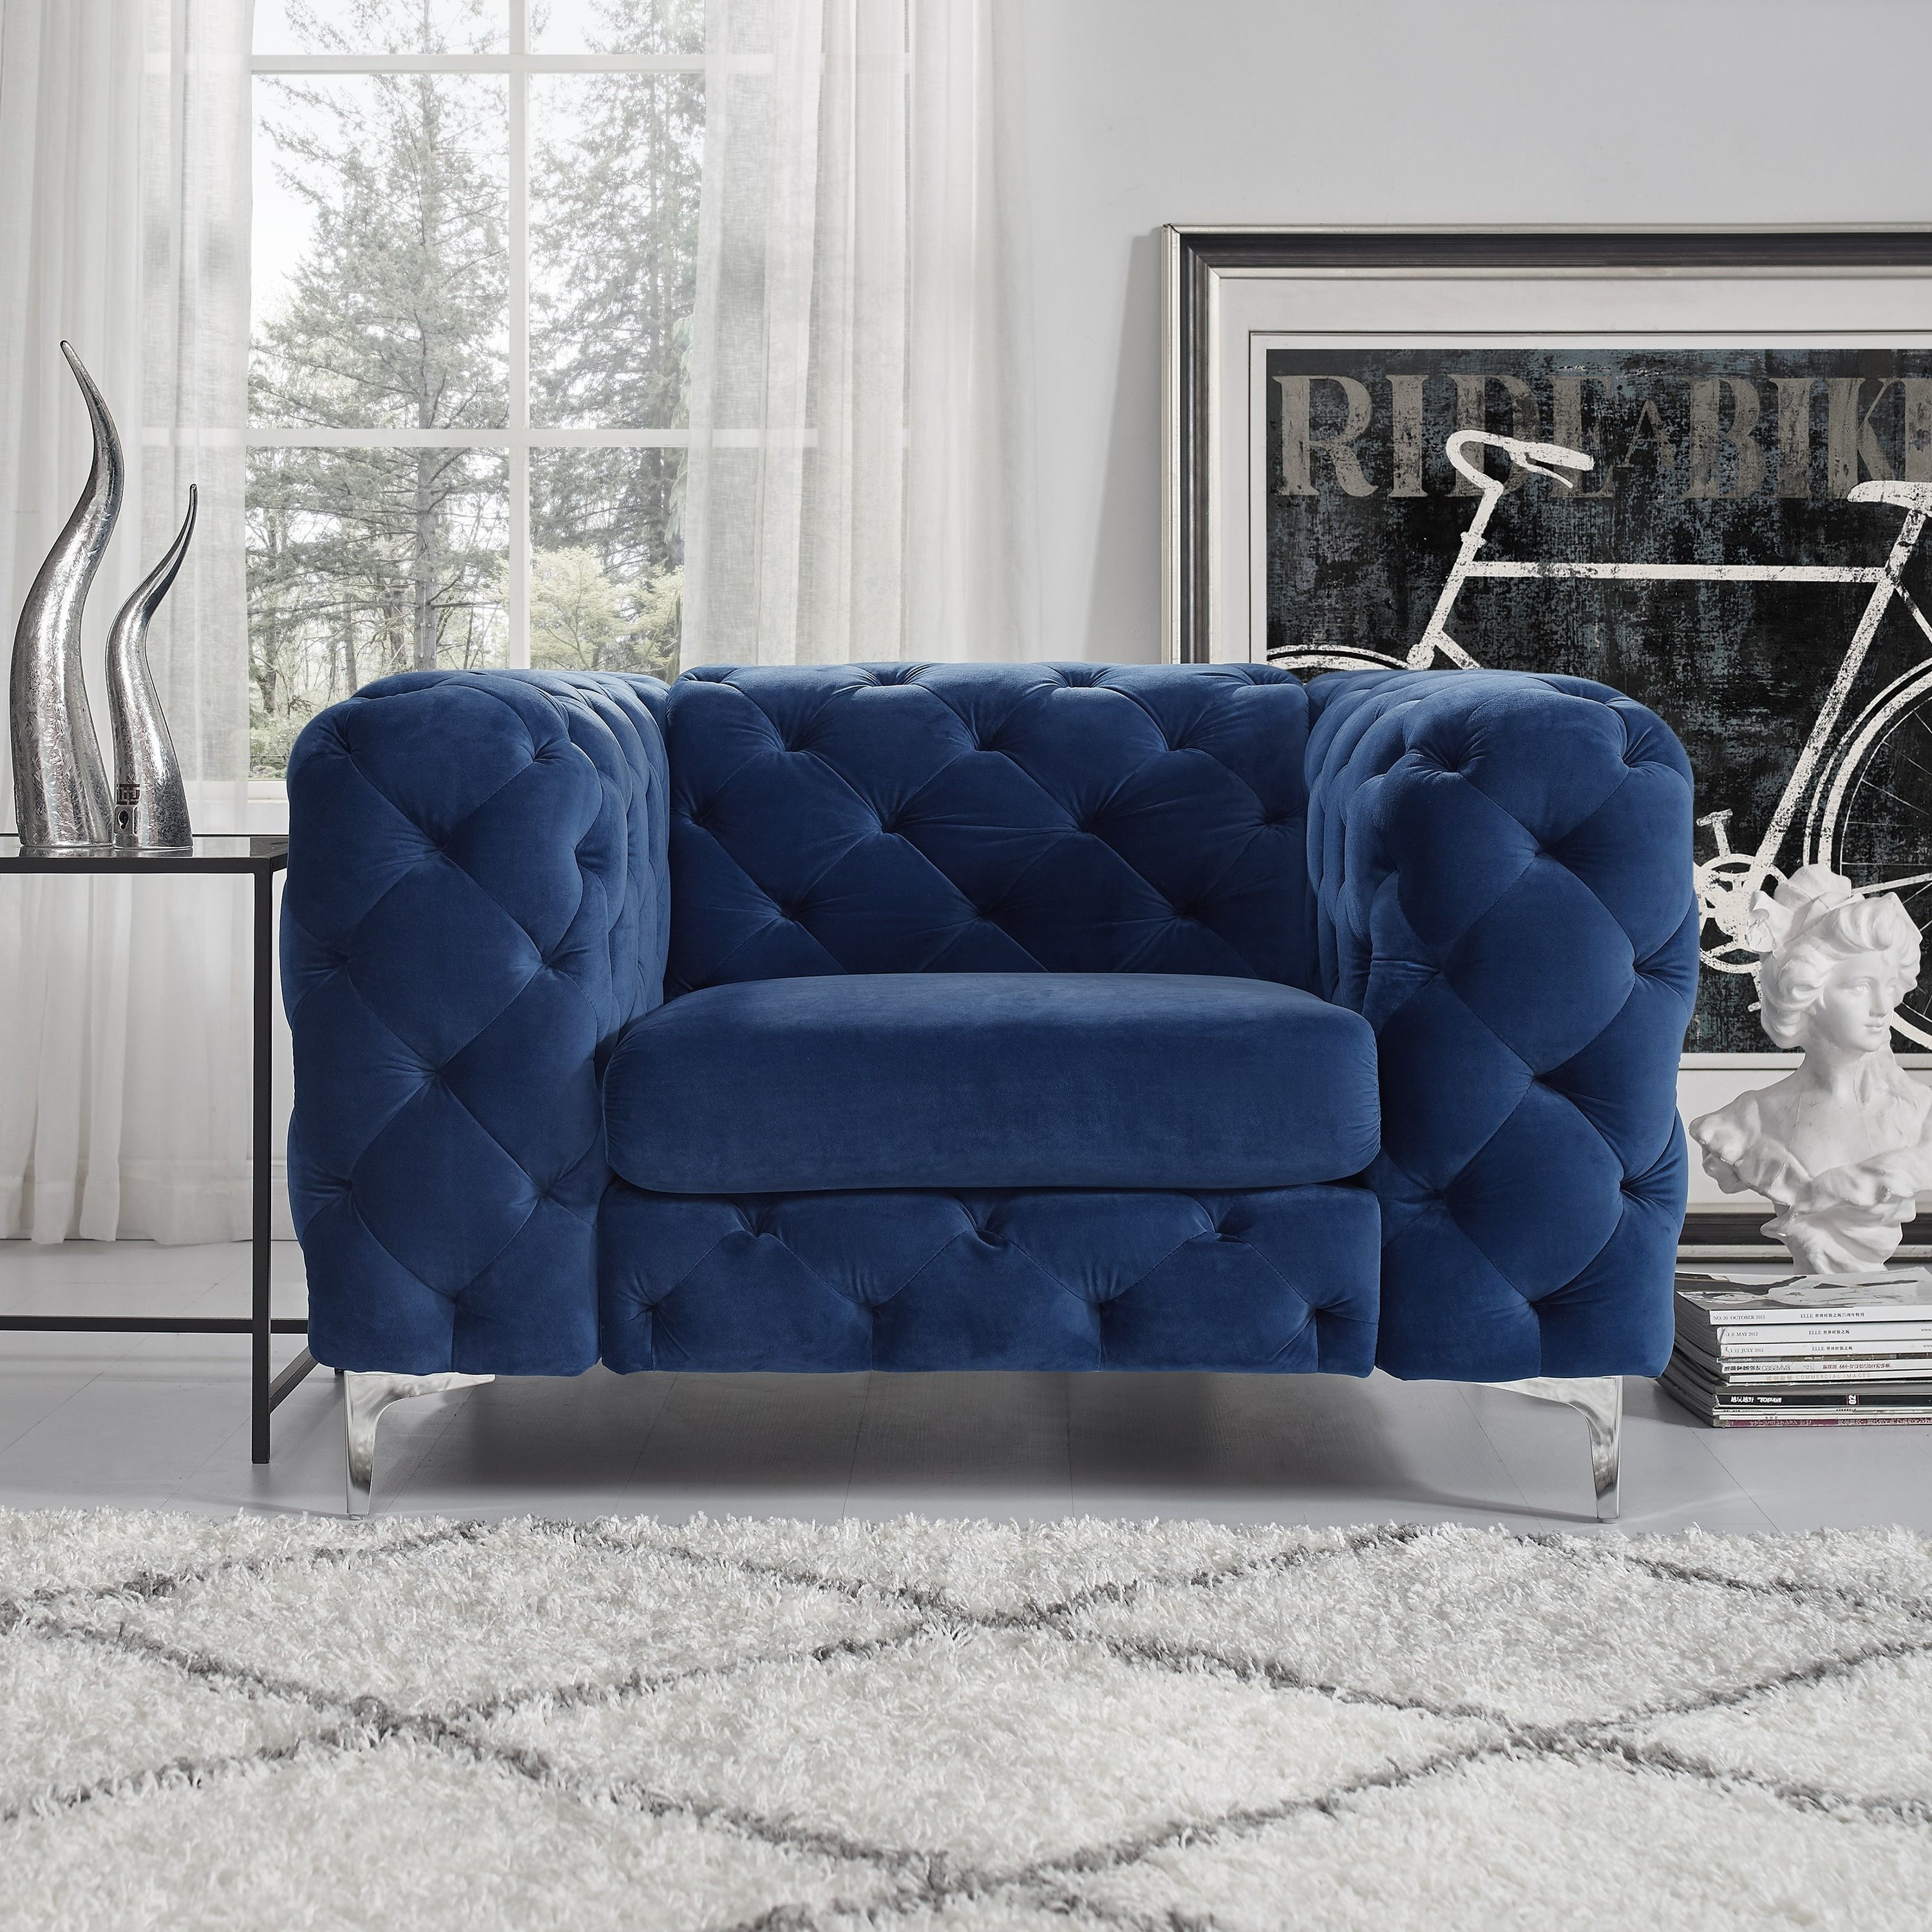 Overstock Com Online Shopping Bedding Furniture Electronics Jewelry Clothing More Trendy Sofas Furniture Club Chairs